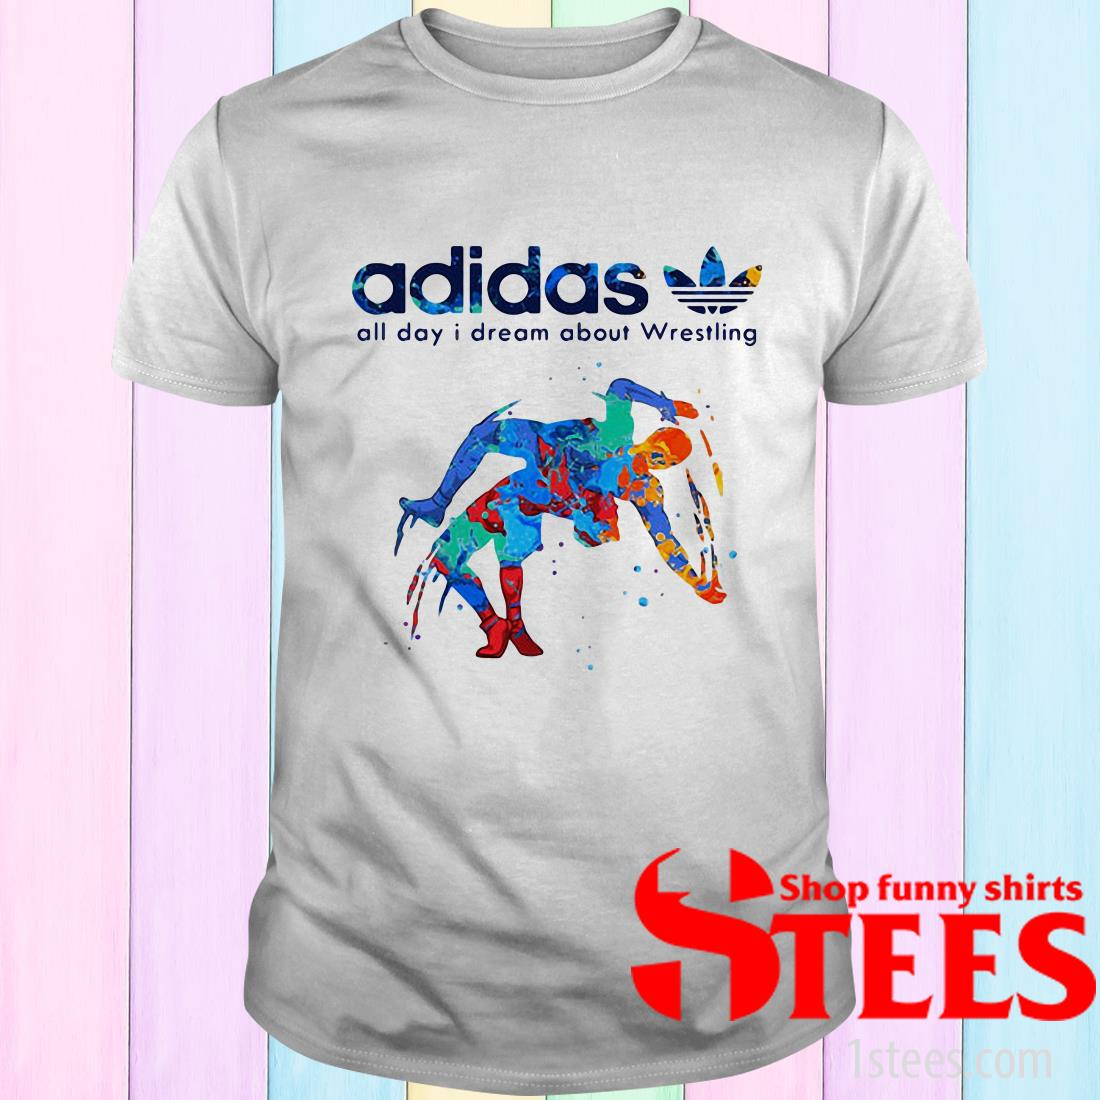 Adidas All Day I Dream About Wrestling Hot T-Shirt